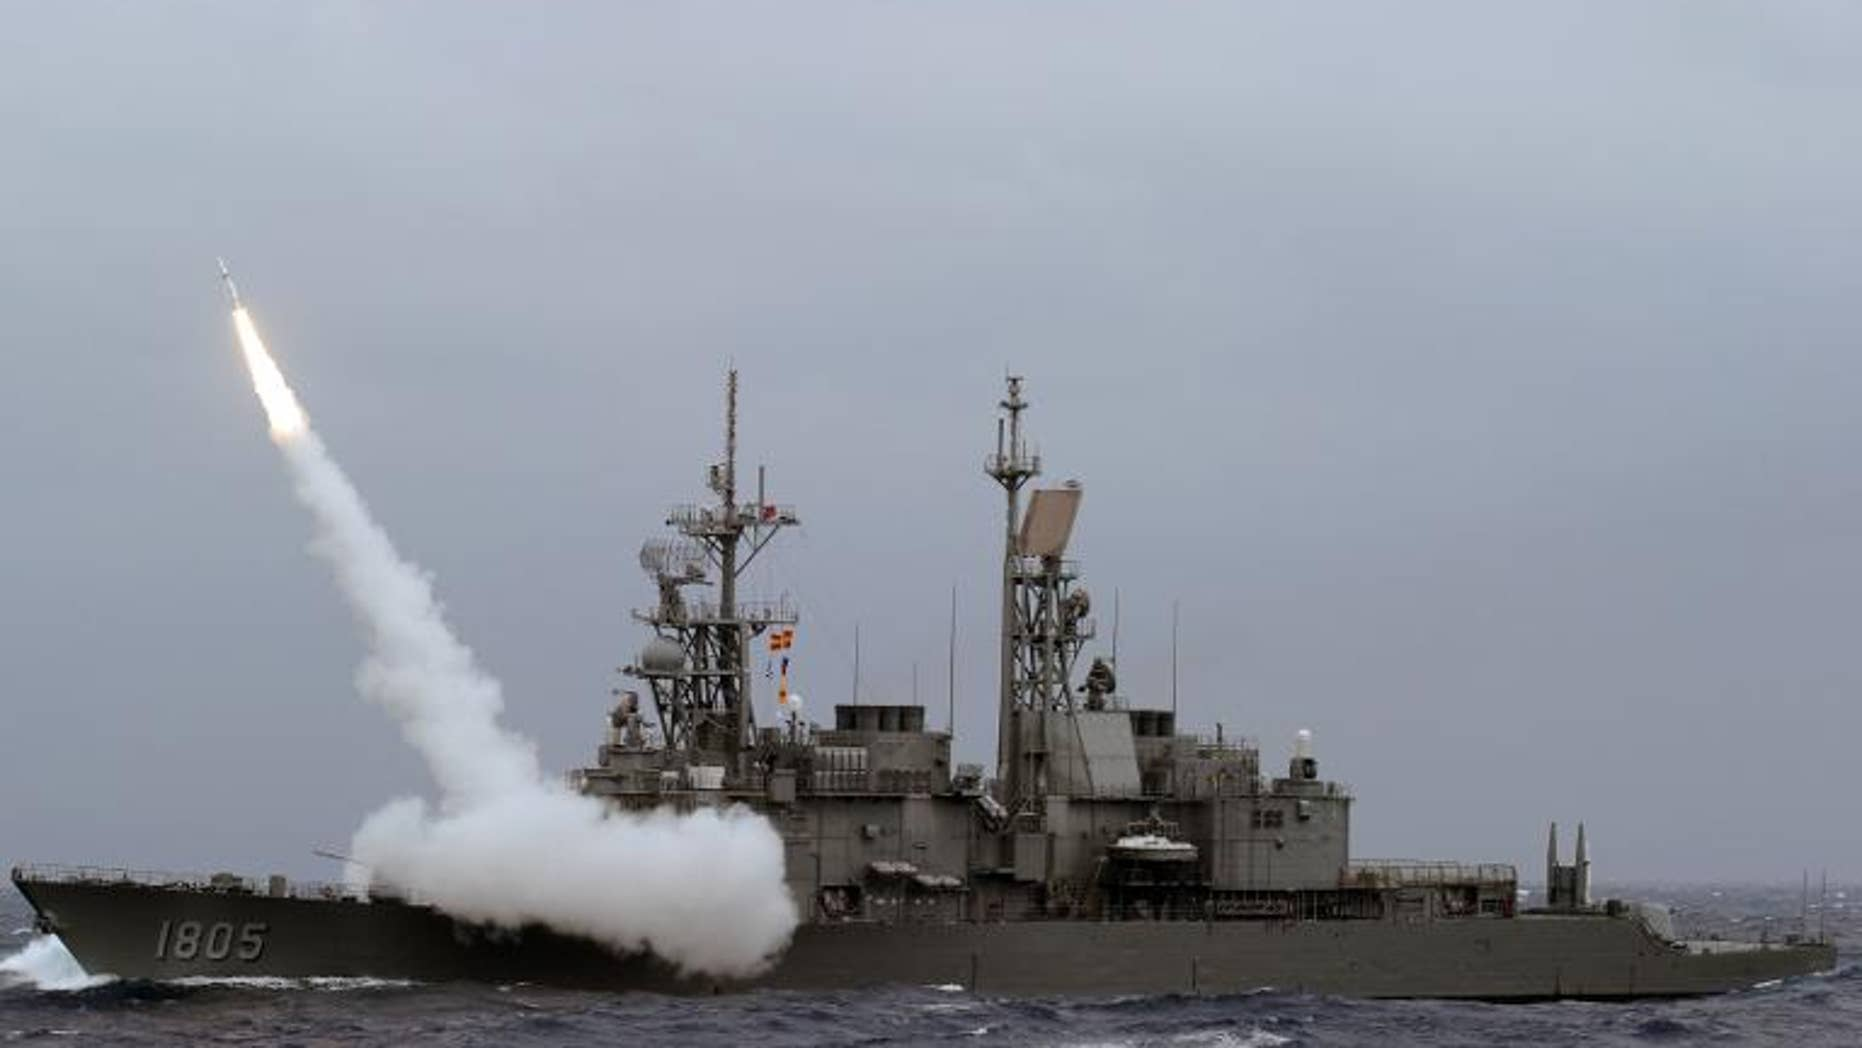 A Taiwan navy Kidd-class destoryer launches a SM-2 surface to air missile during a live fire drill at sea near the east coast of Taiwan on September 26, 2013